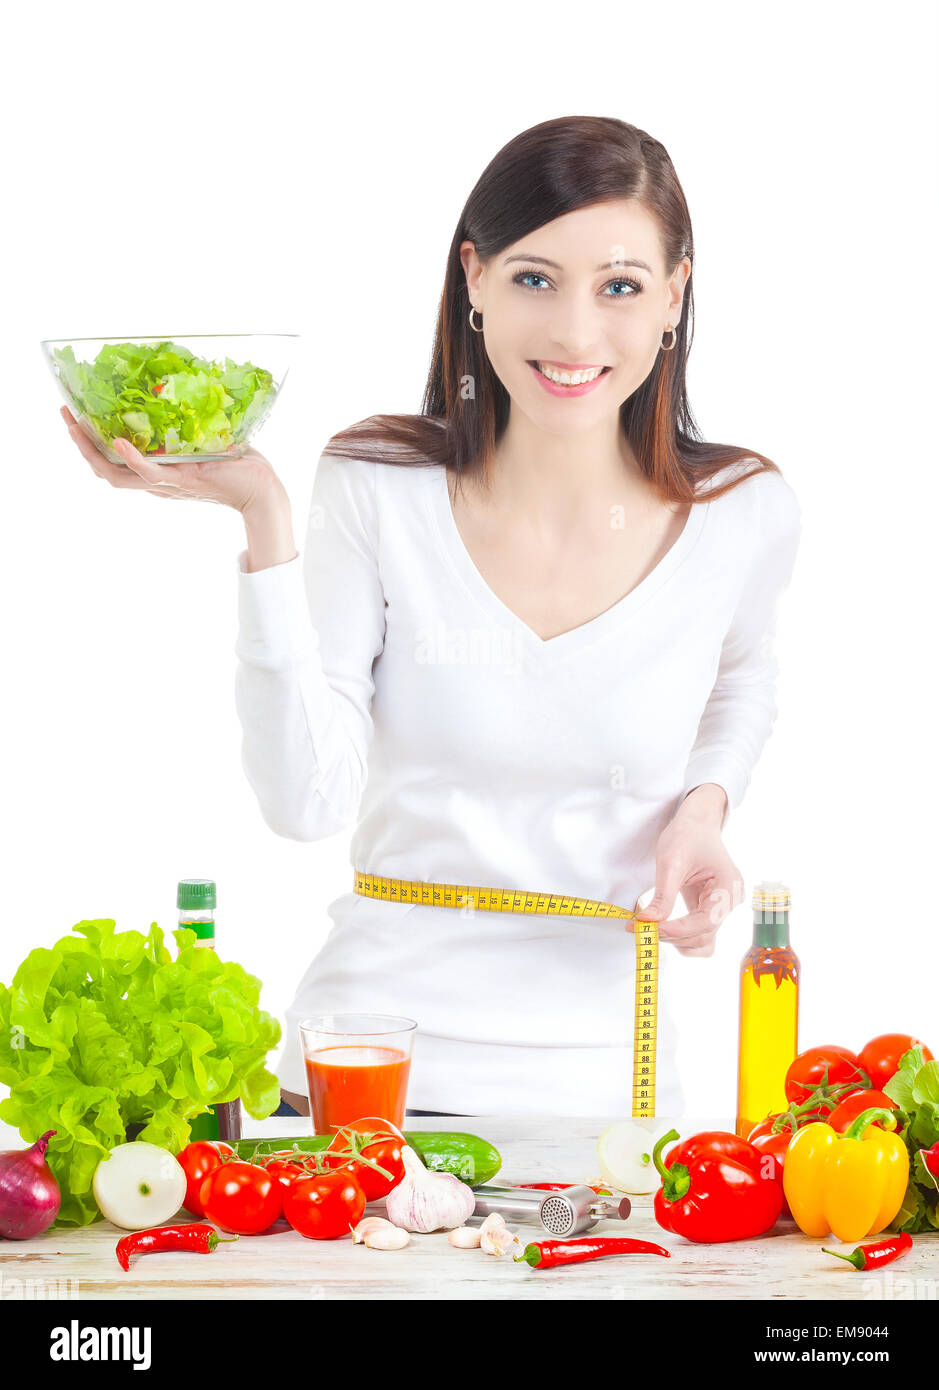 Young happy woman with salad, measuring her waistline. Healthy food ans lifestyle concept. - Stock Image